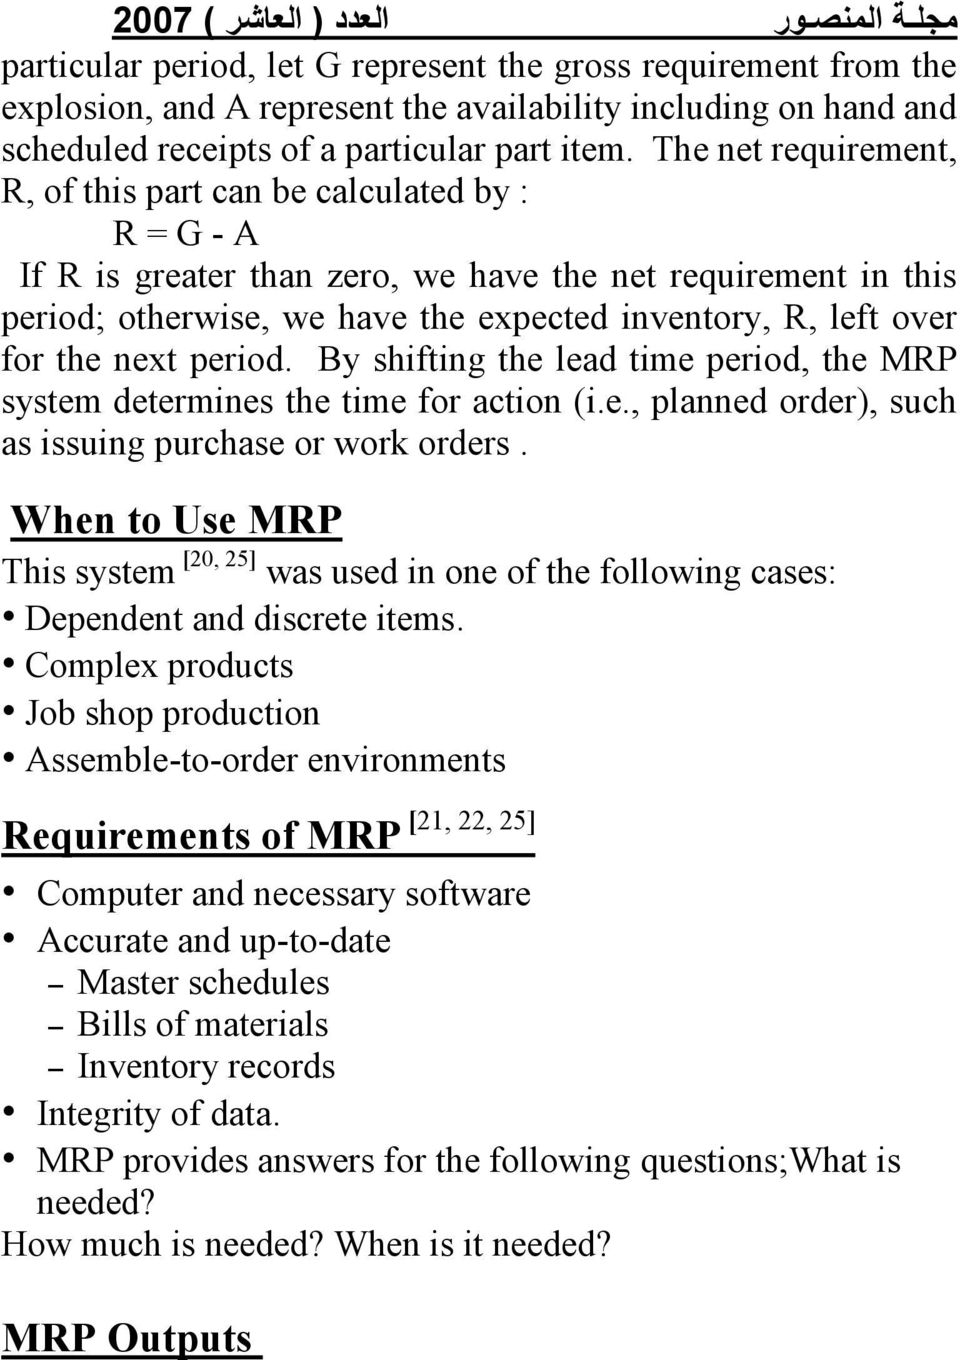 for the next period. By shifting the lead time period, the MRP system determines the time for action (i.e., planned order), such as issuing purchase or work orders.